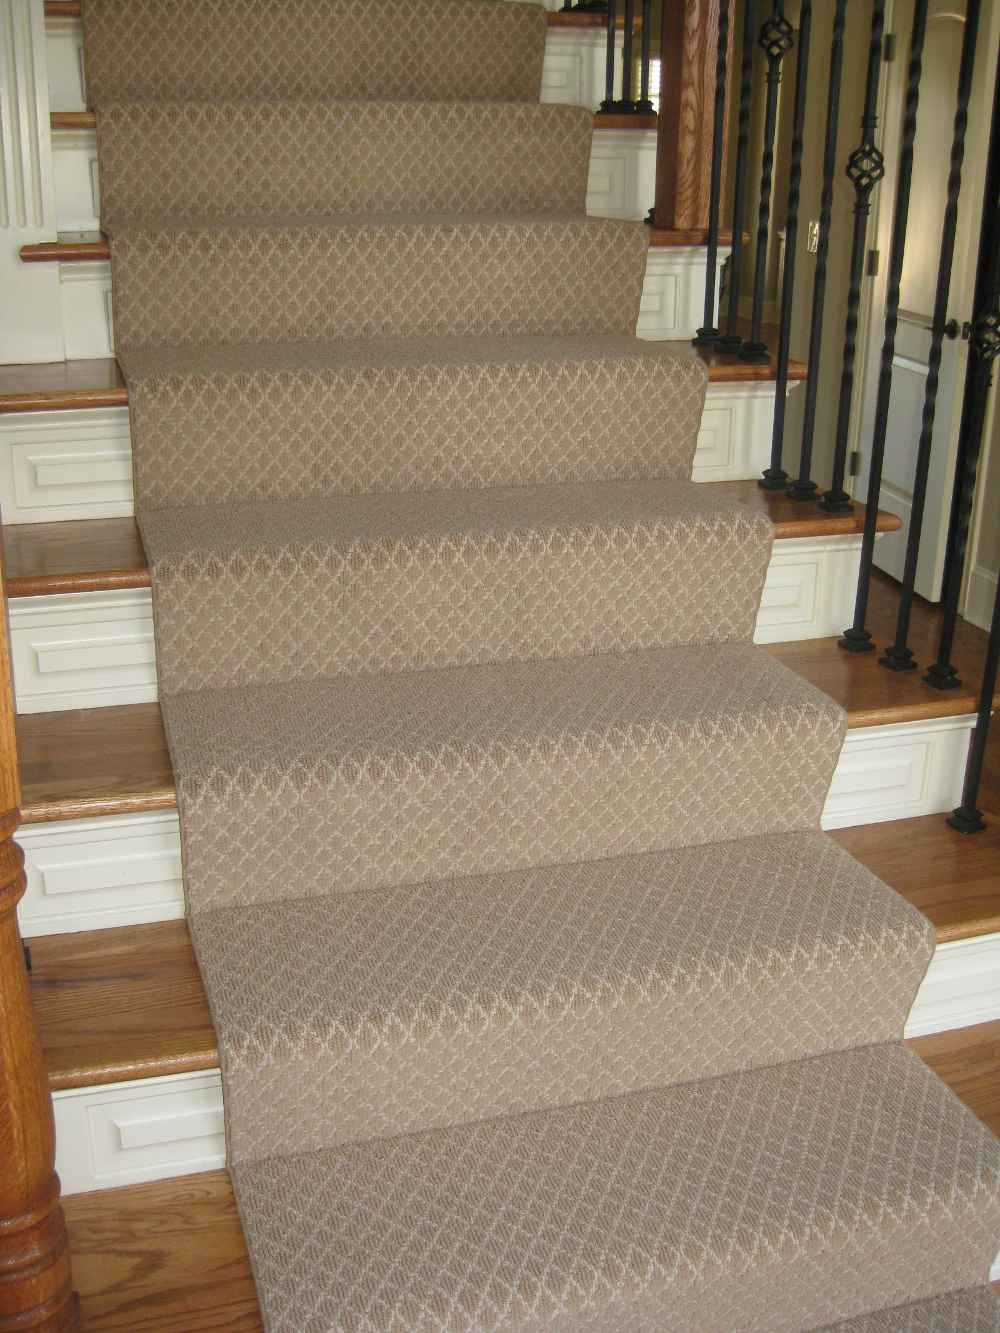 put carpet runners for stairs without damage - http://memdream.com/ DVRZSXS